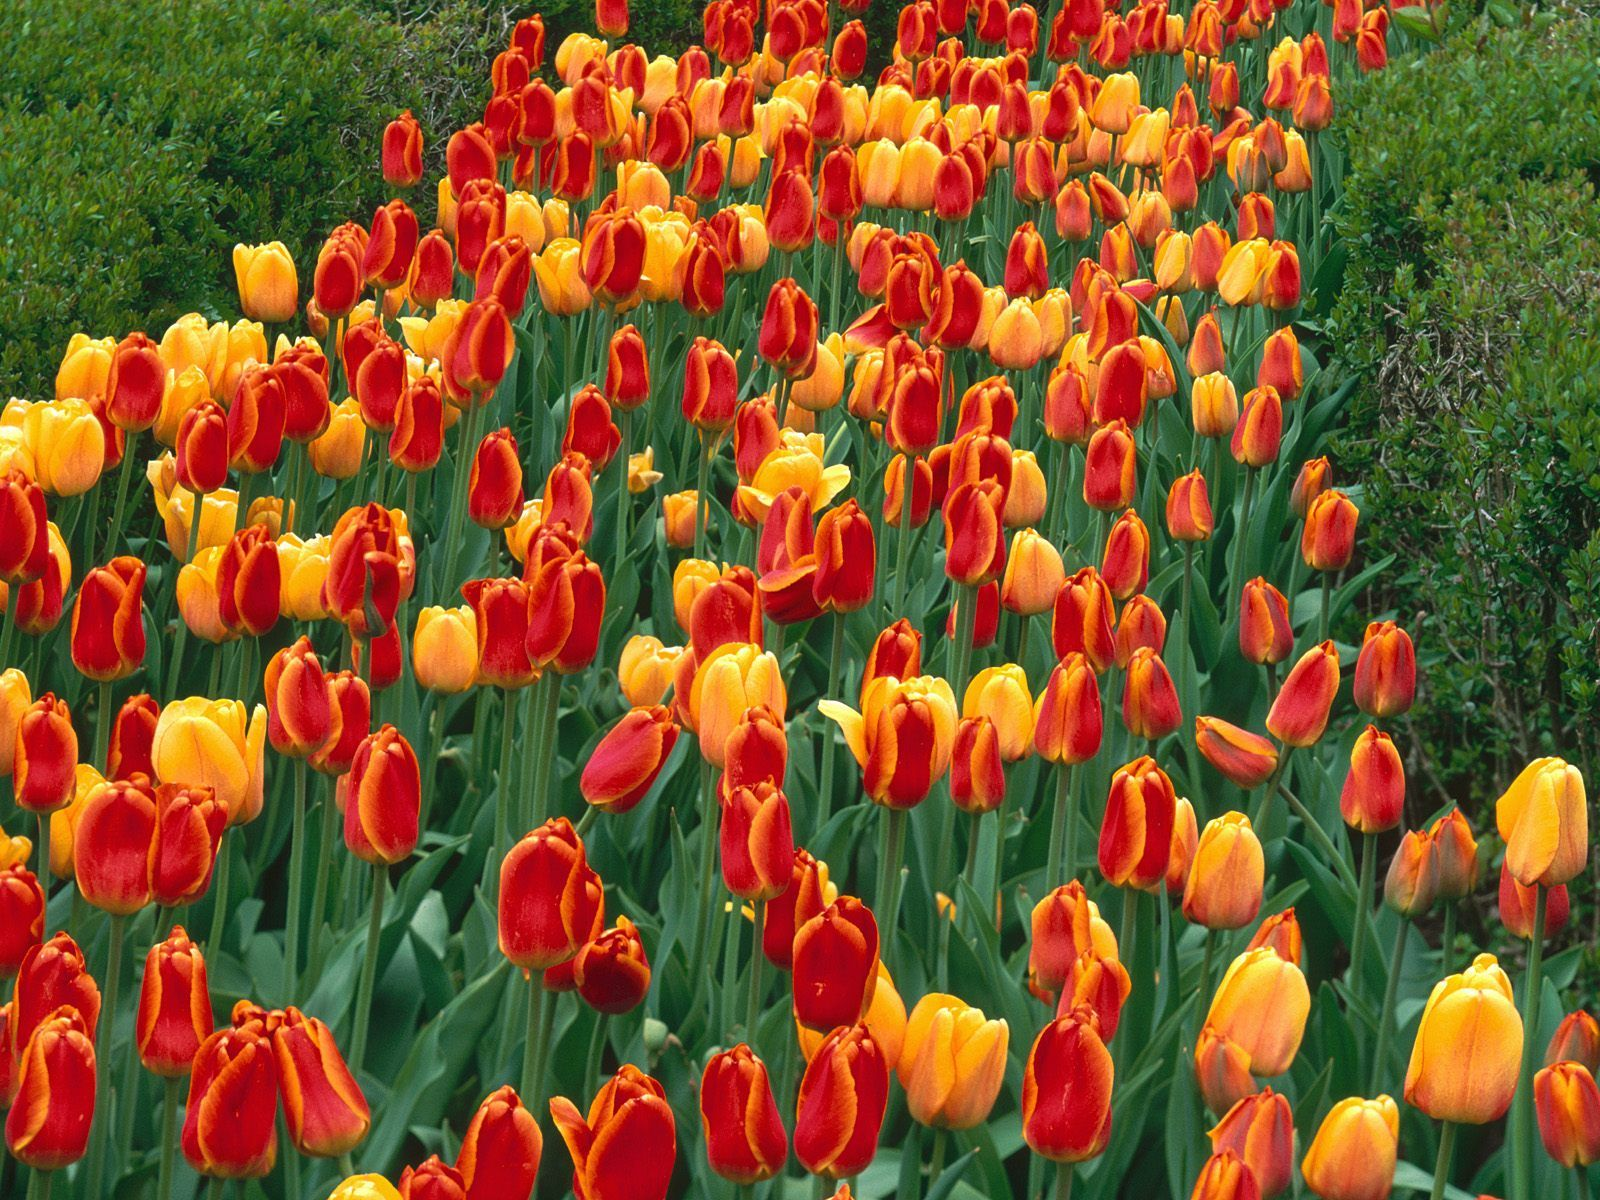 Tulips Beautiful Flowers Images Tulips Plants